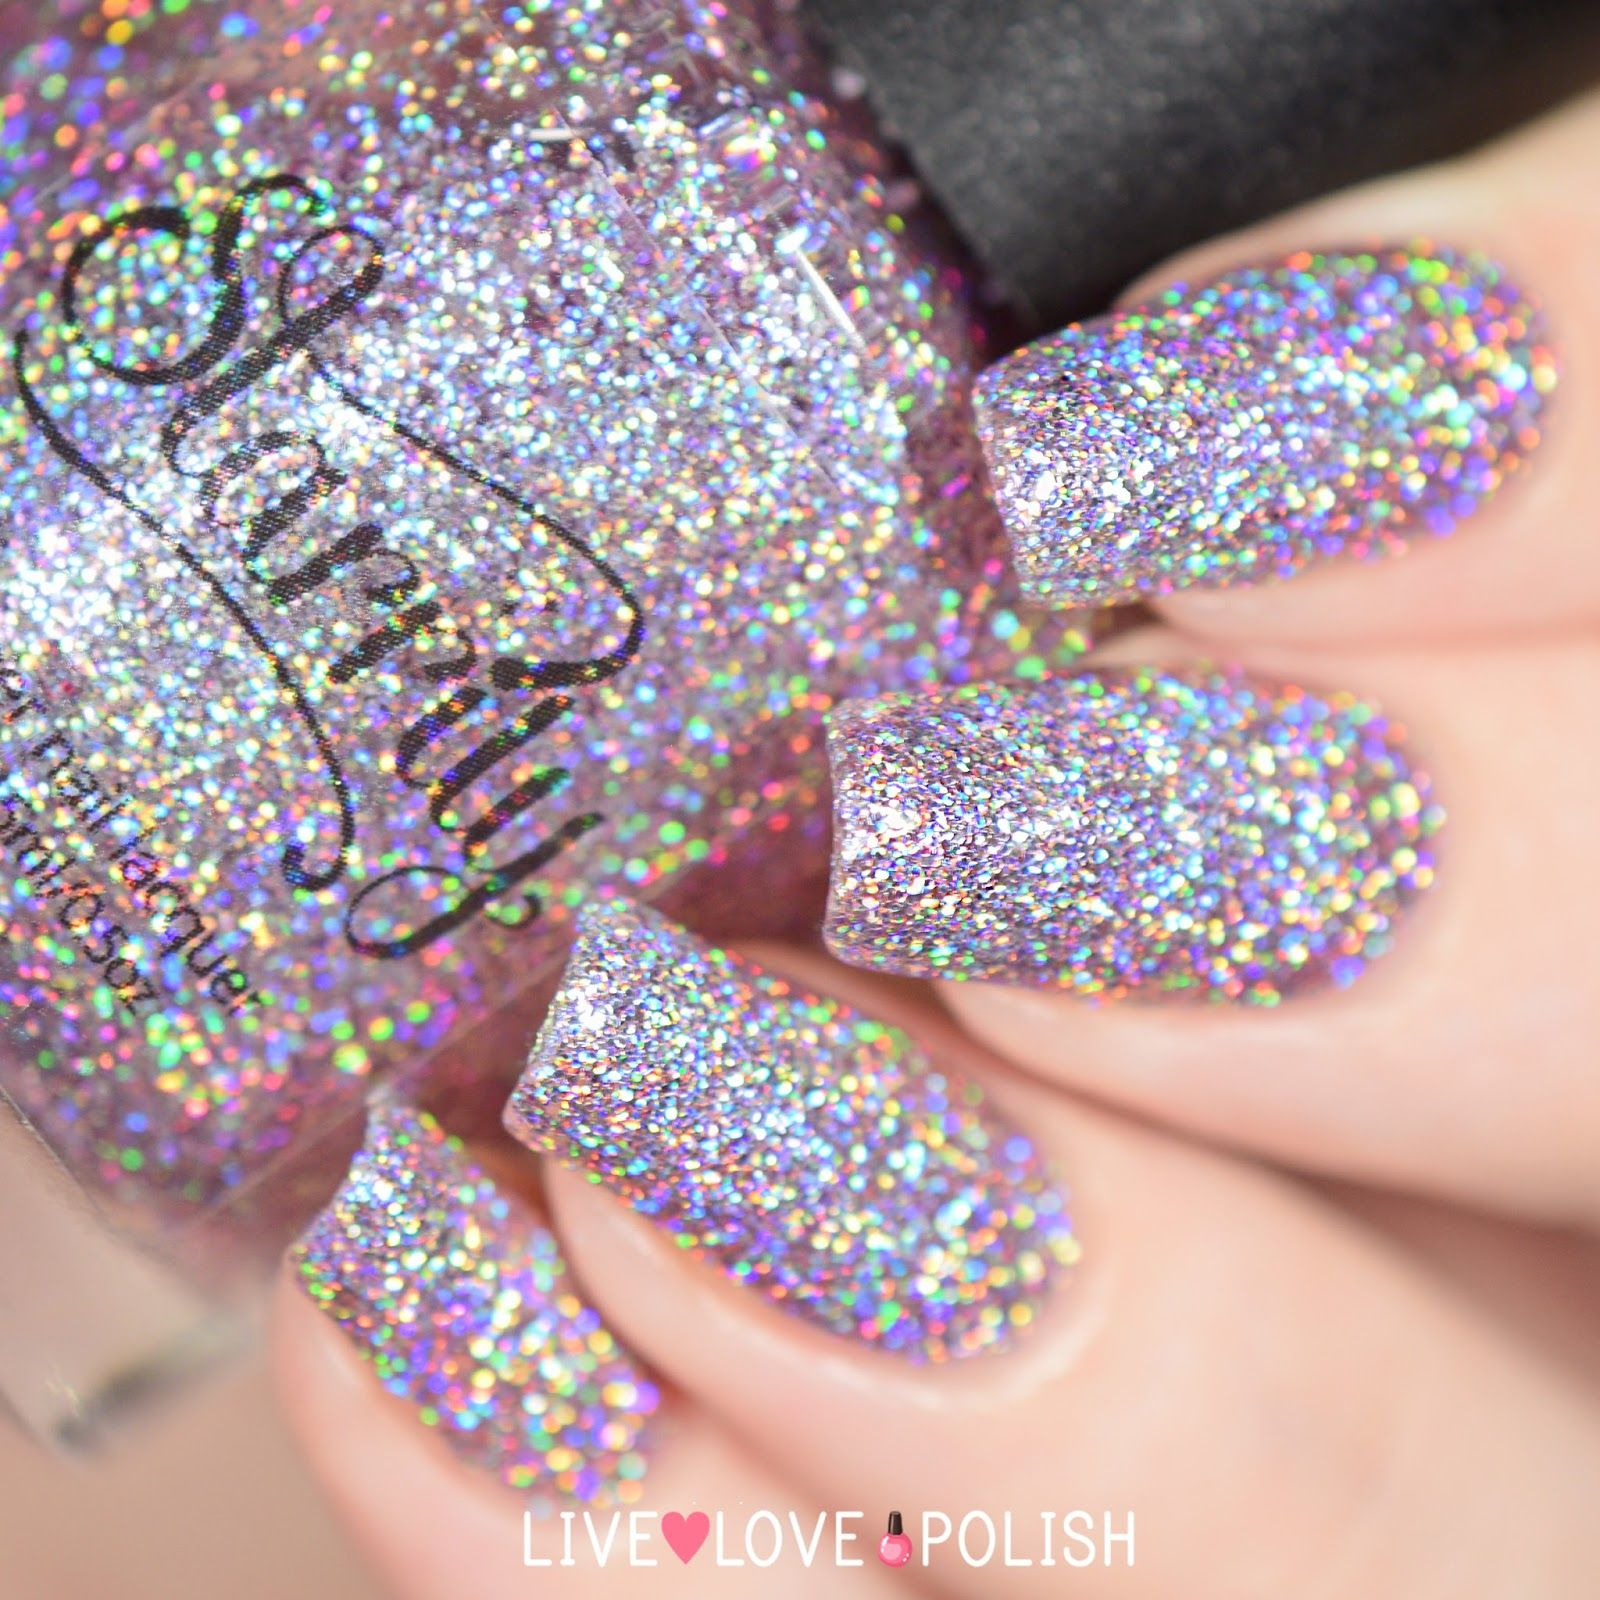 Holy Holo Glitter S Have Blessed The Land And All Kitties In It With This Beautiful Pink Wonder Of World Official